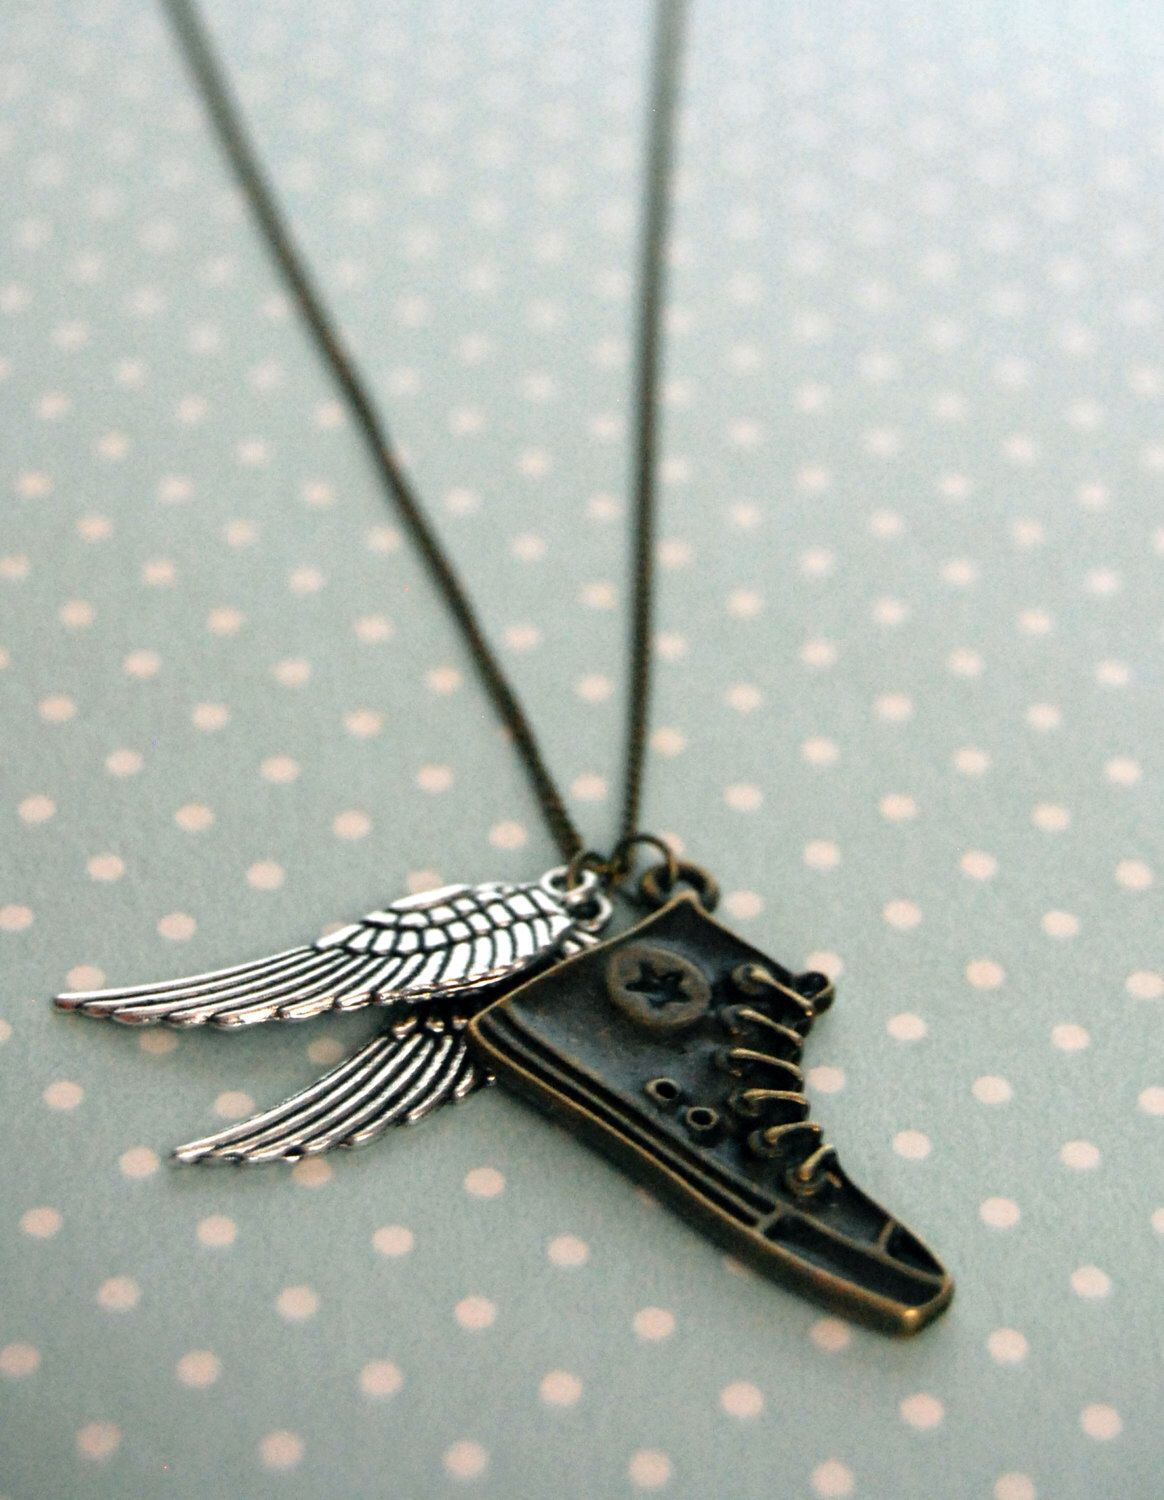 Percy Jackson - Hermes shoes - Perseus flying shoes - Greek Mythology - Converse wings necklace by otterlydesign on Etsy https://www.etsy.com/listing/123209571/percy-jackson-hermes-shoes-perseus